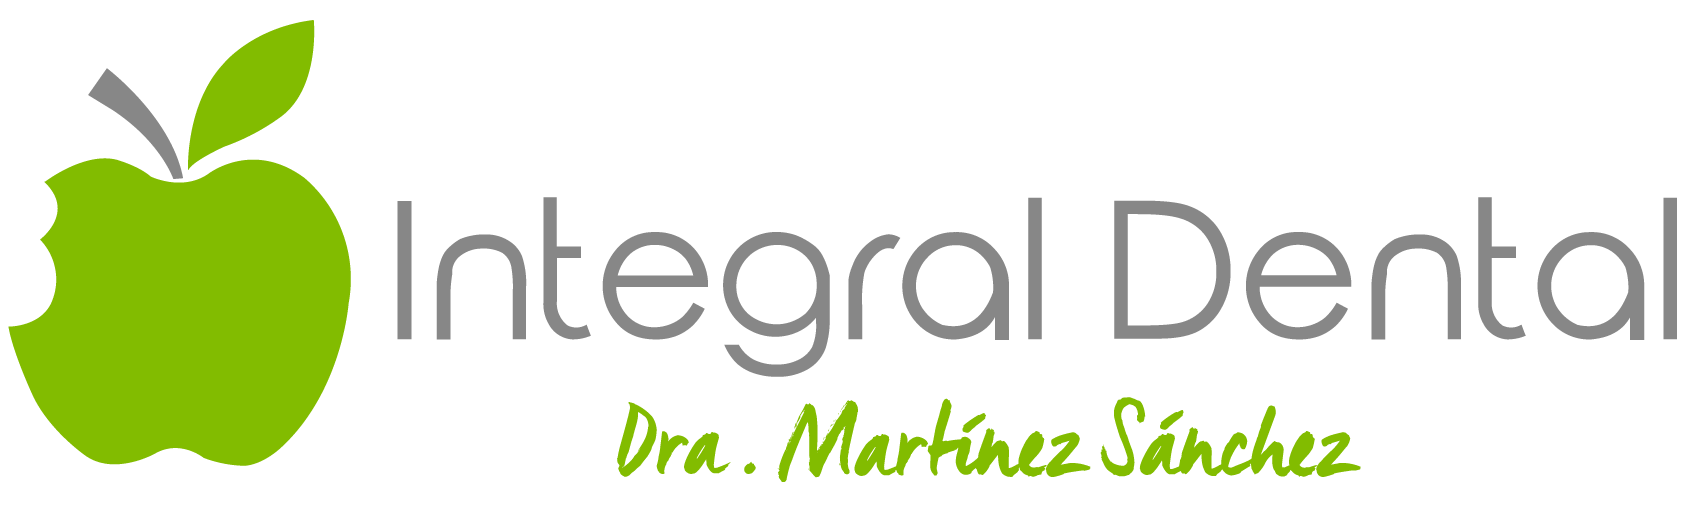 INTEGRALDENTAL Logo